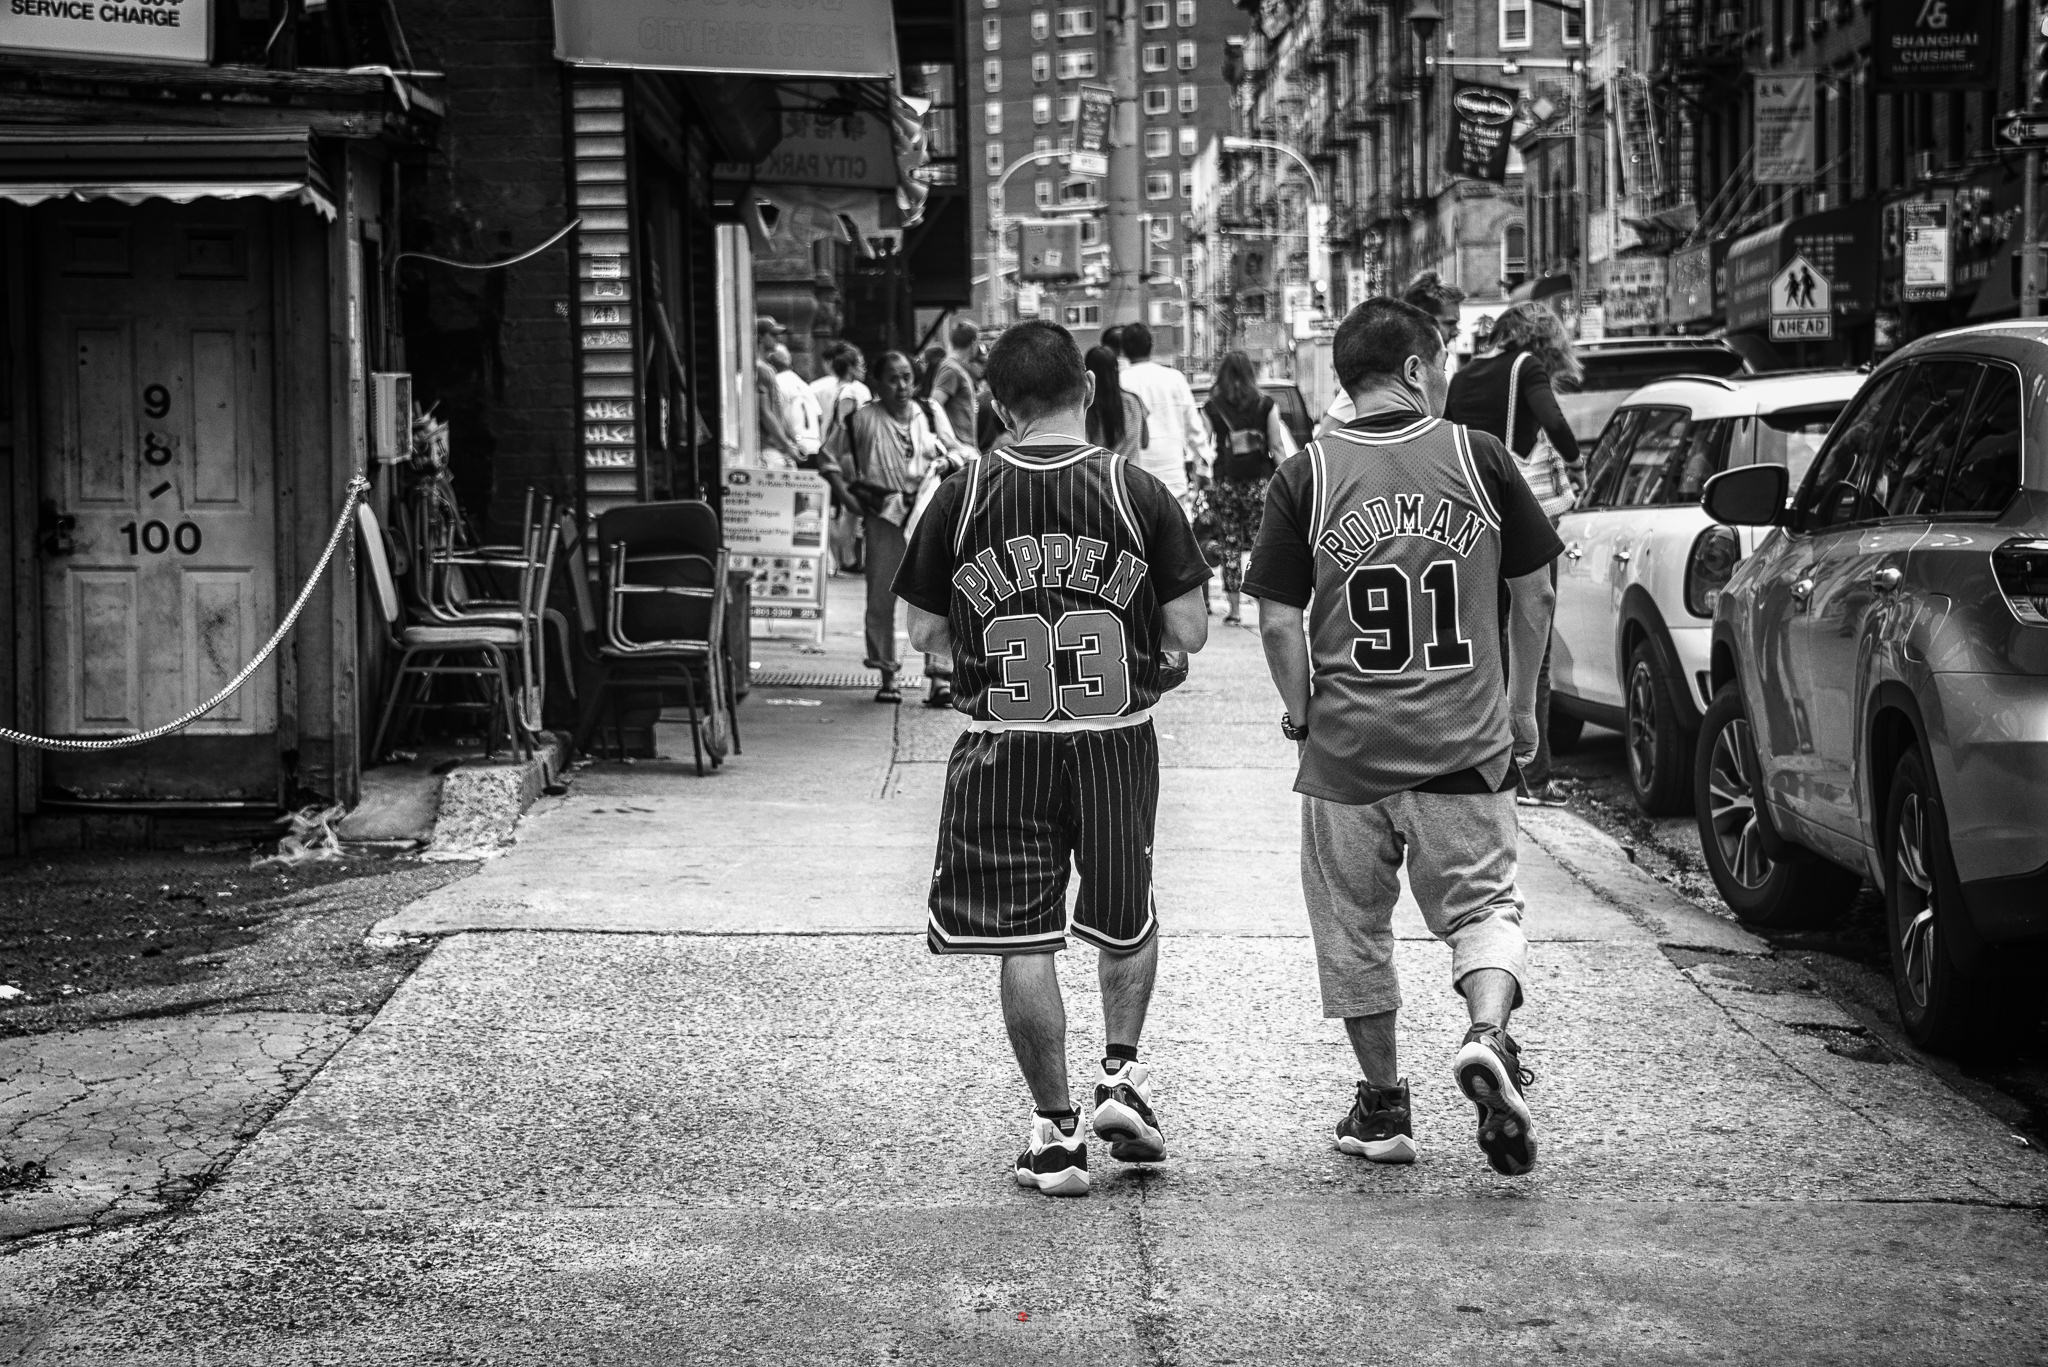 Pippen and Rodman